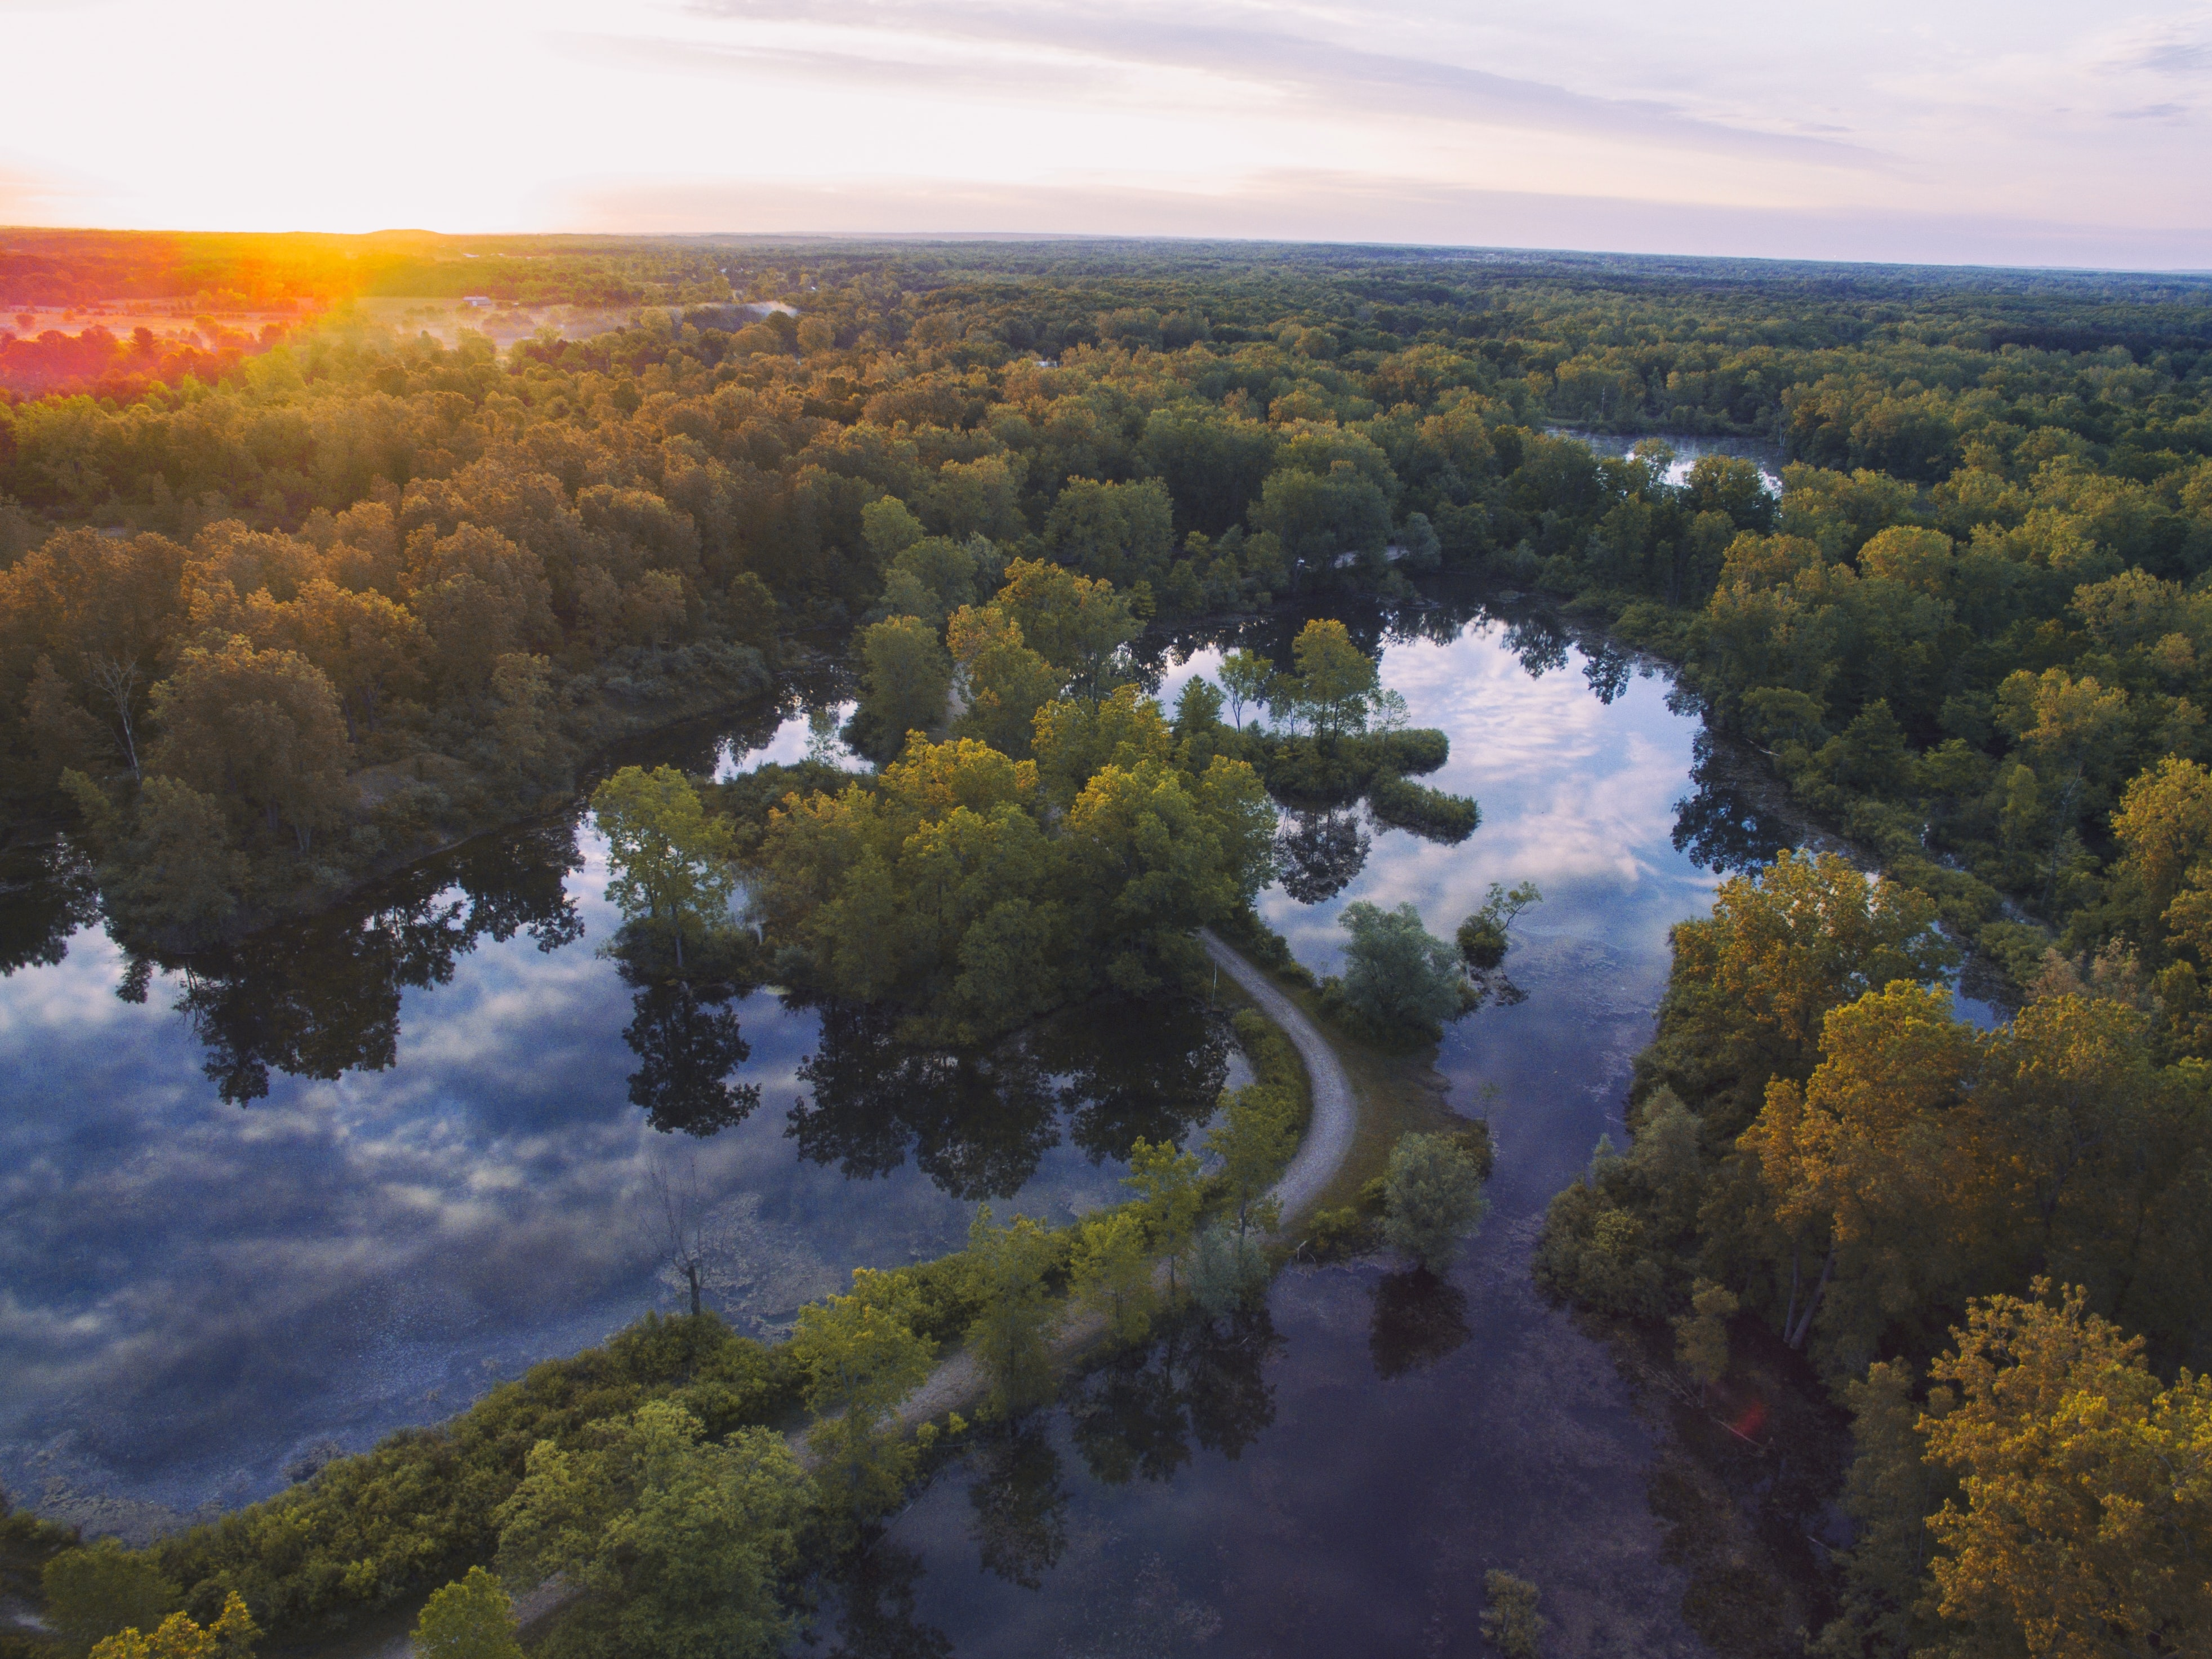 Aerial view of a road winding through the rivers of Otisville, Michigan during a golden sunset